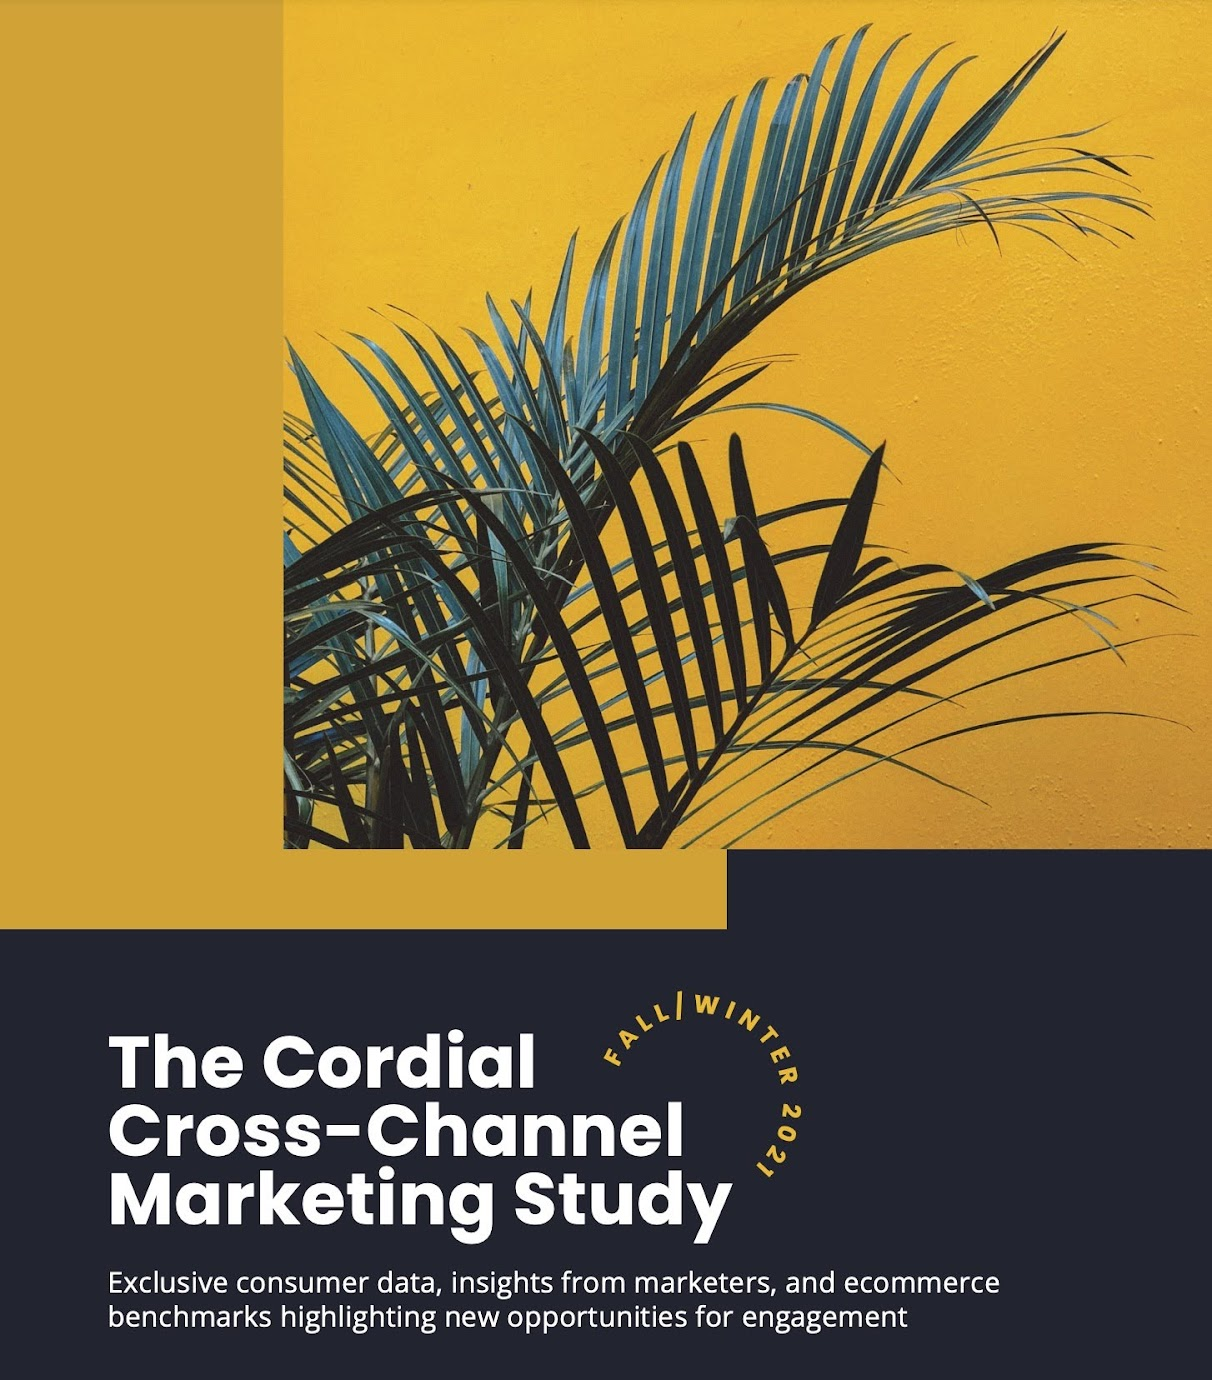 Cross-Channel Marketing Study highlighting new opportunities for engagement